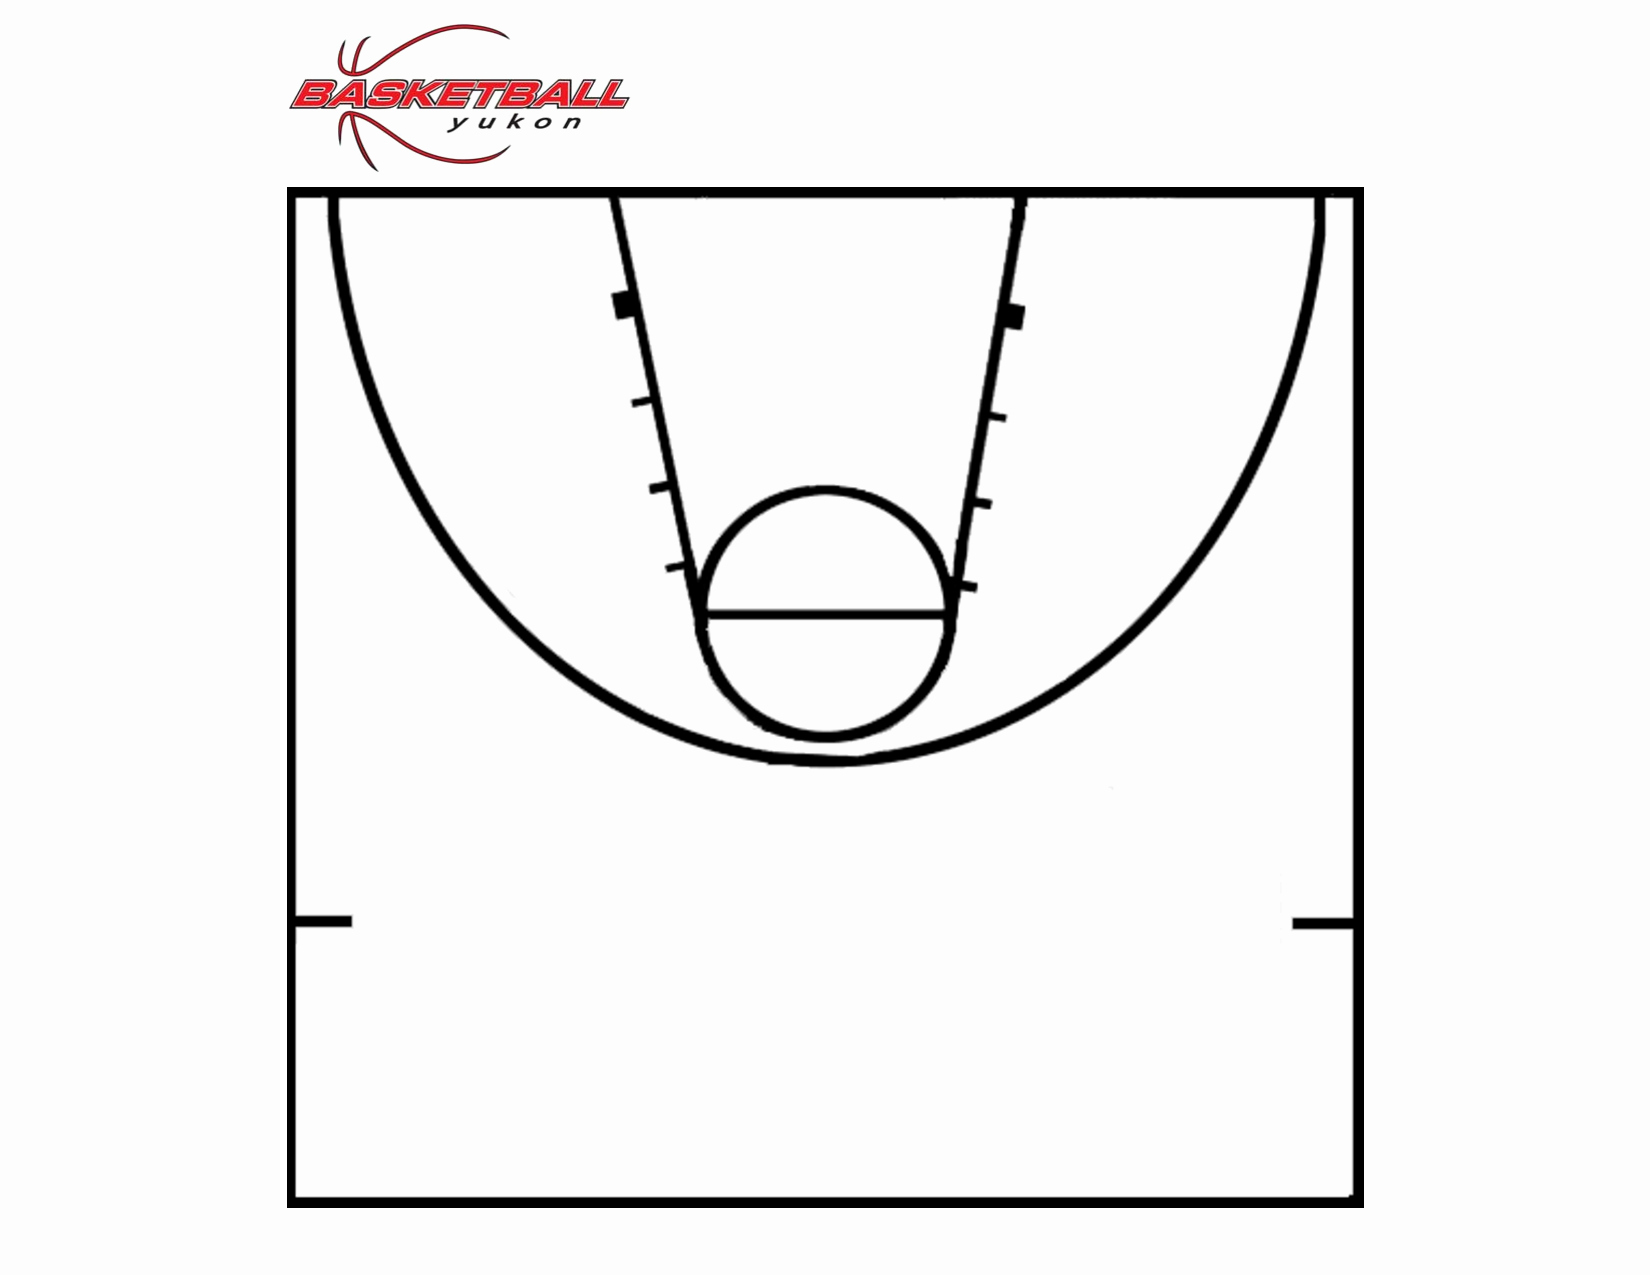 Basketball Court Design Template Awesome Best S Of Printable Basketball Court Template